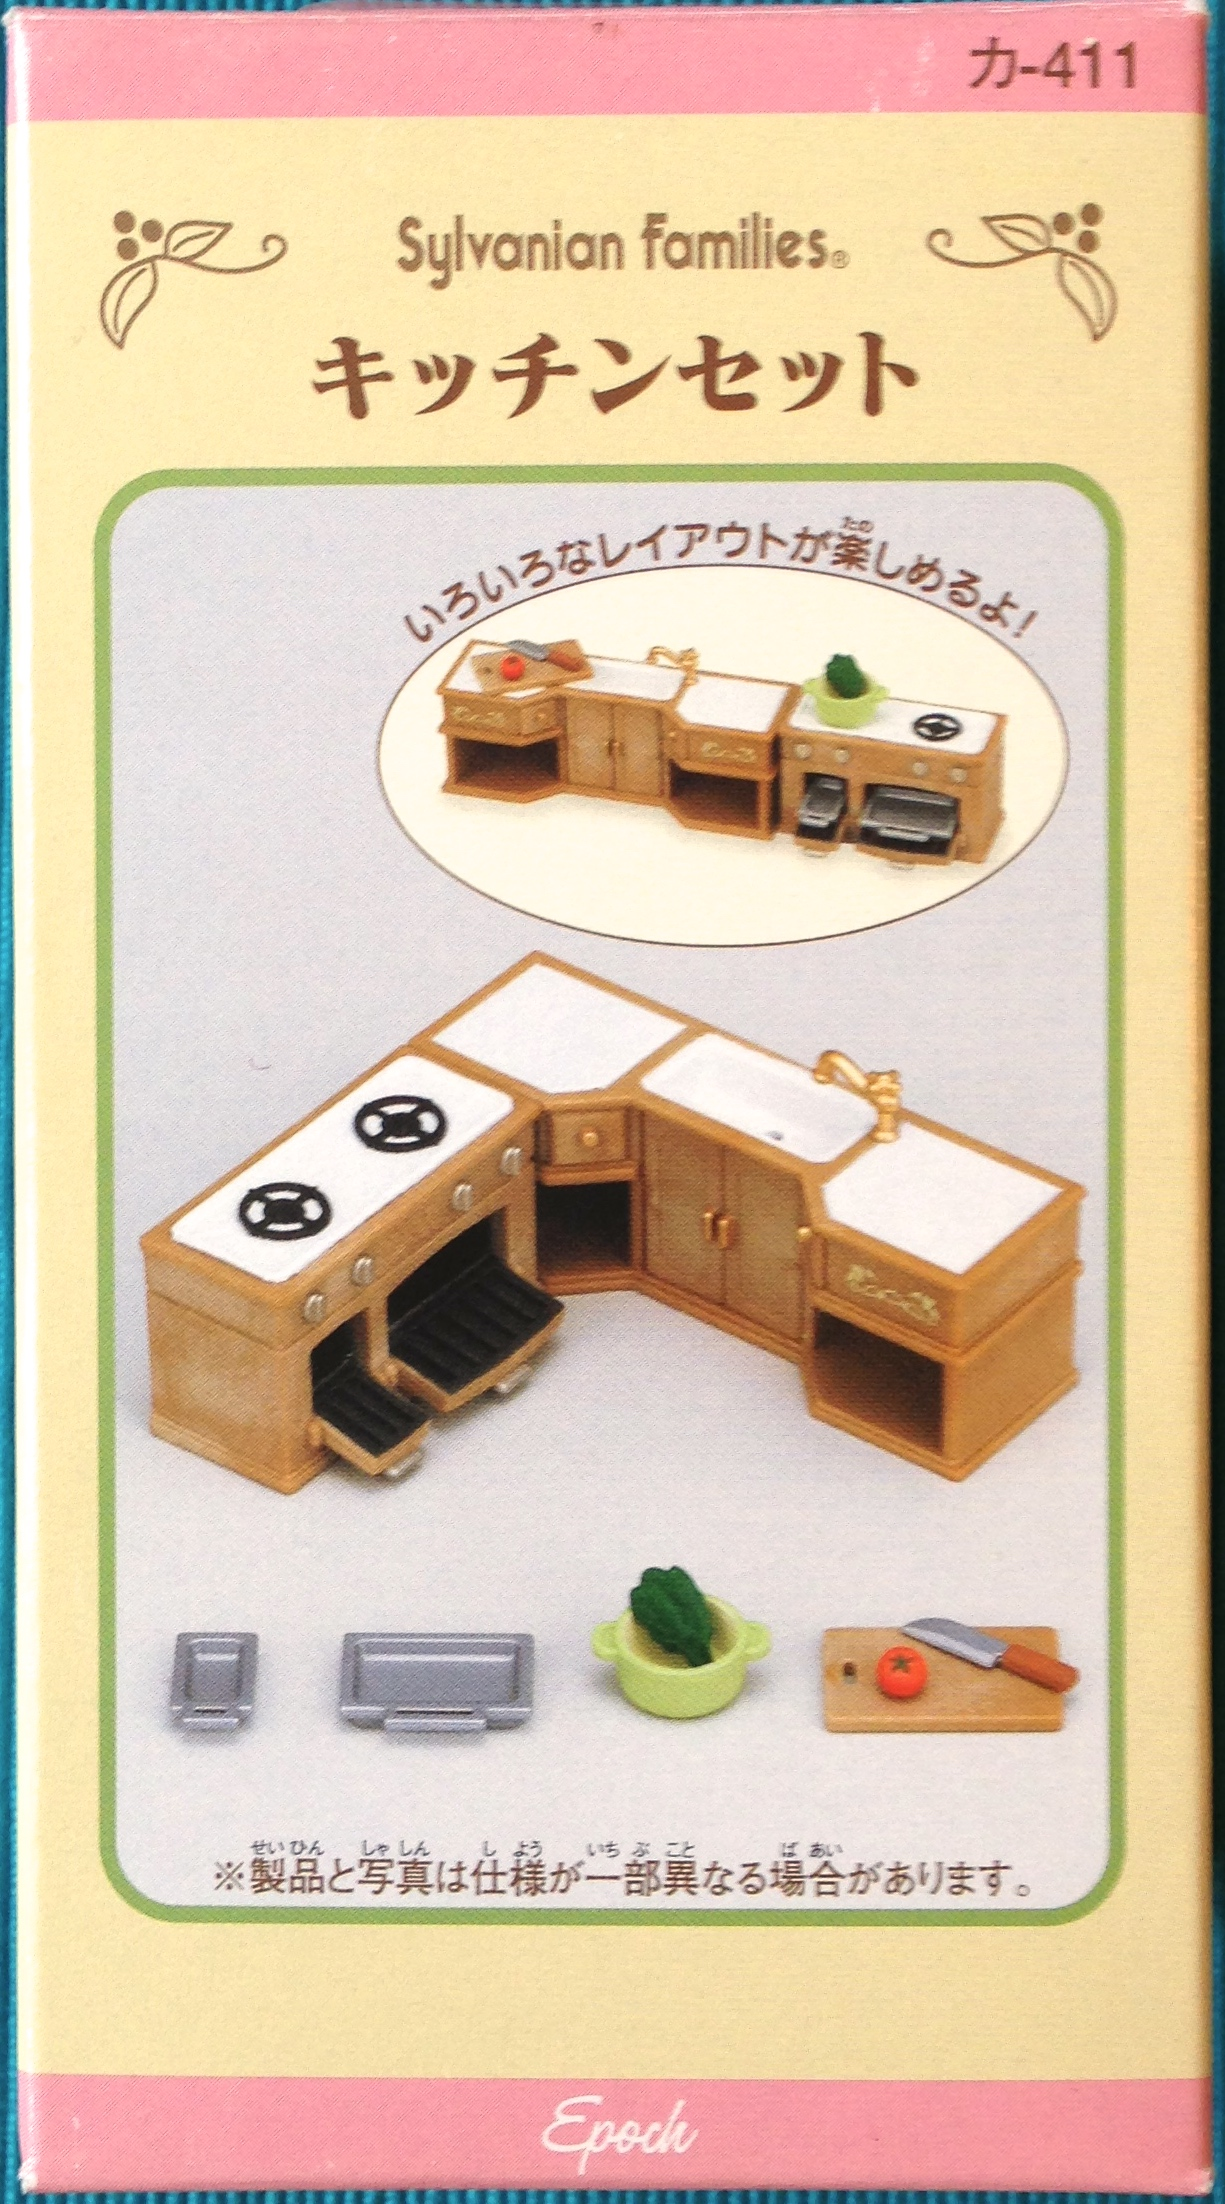 teddy bears friends jp sylvanian families kitchen set stove sink food. Black Bedroom Furniture Sets. Home Design Ideas